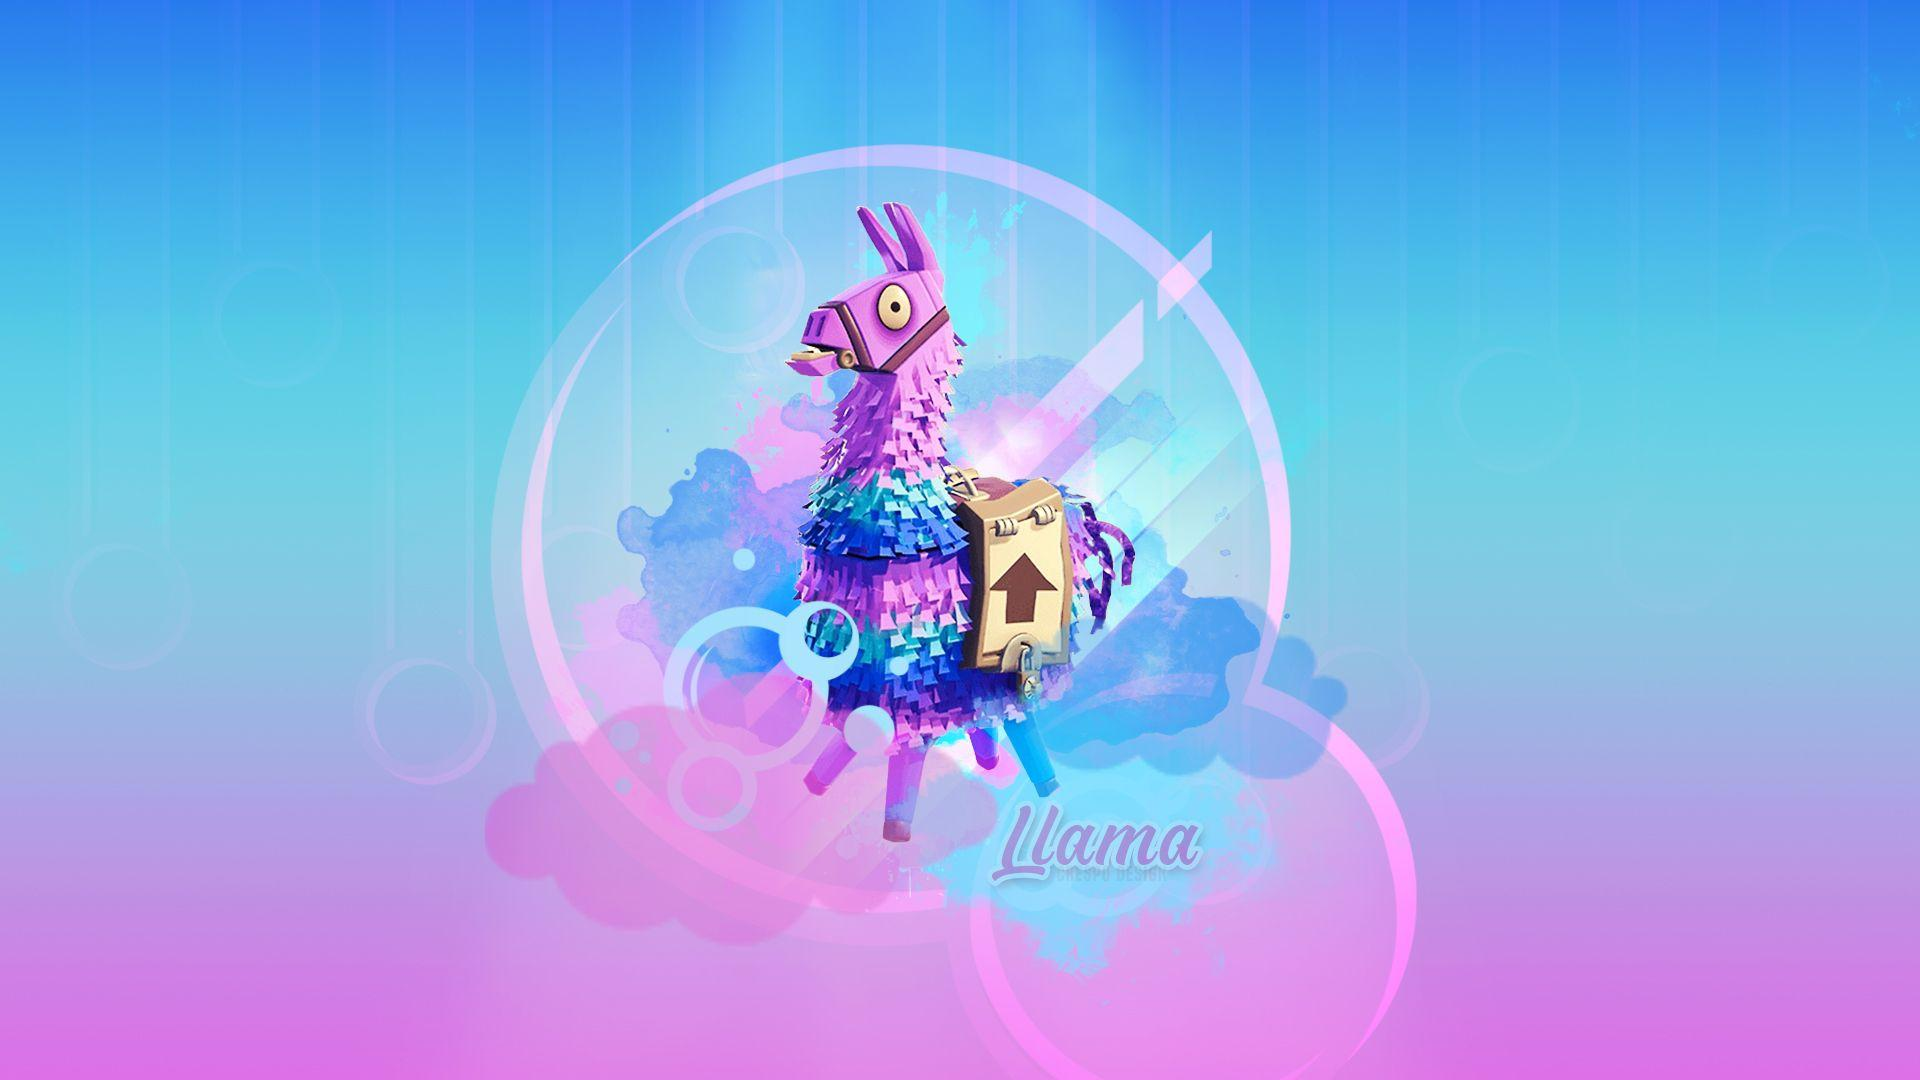 llama fortnite battle royale by cre5po Wallpapers and Free